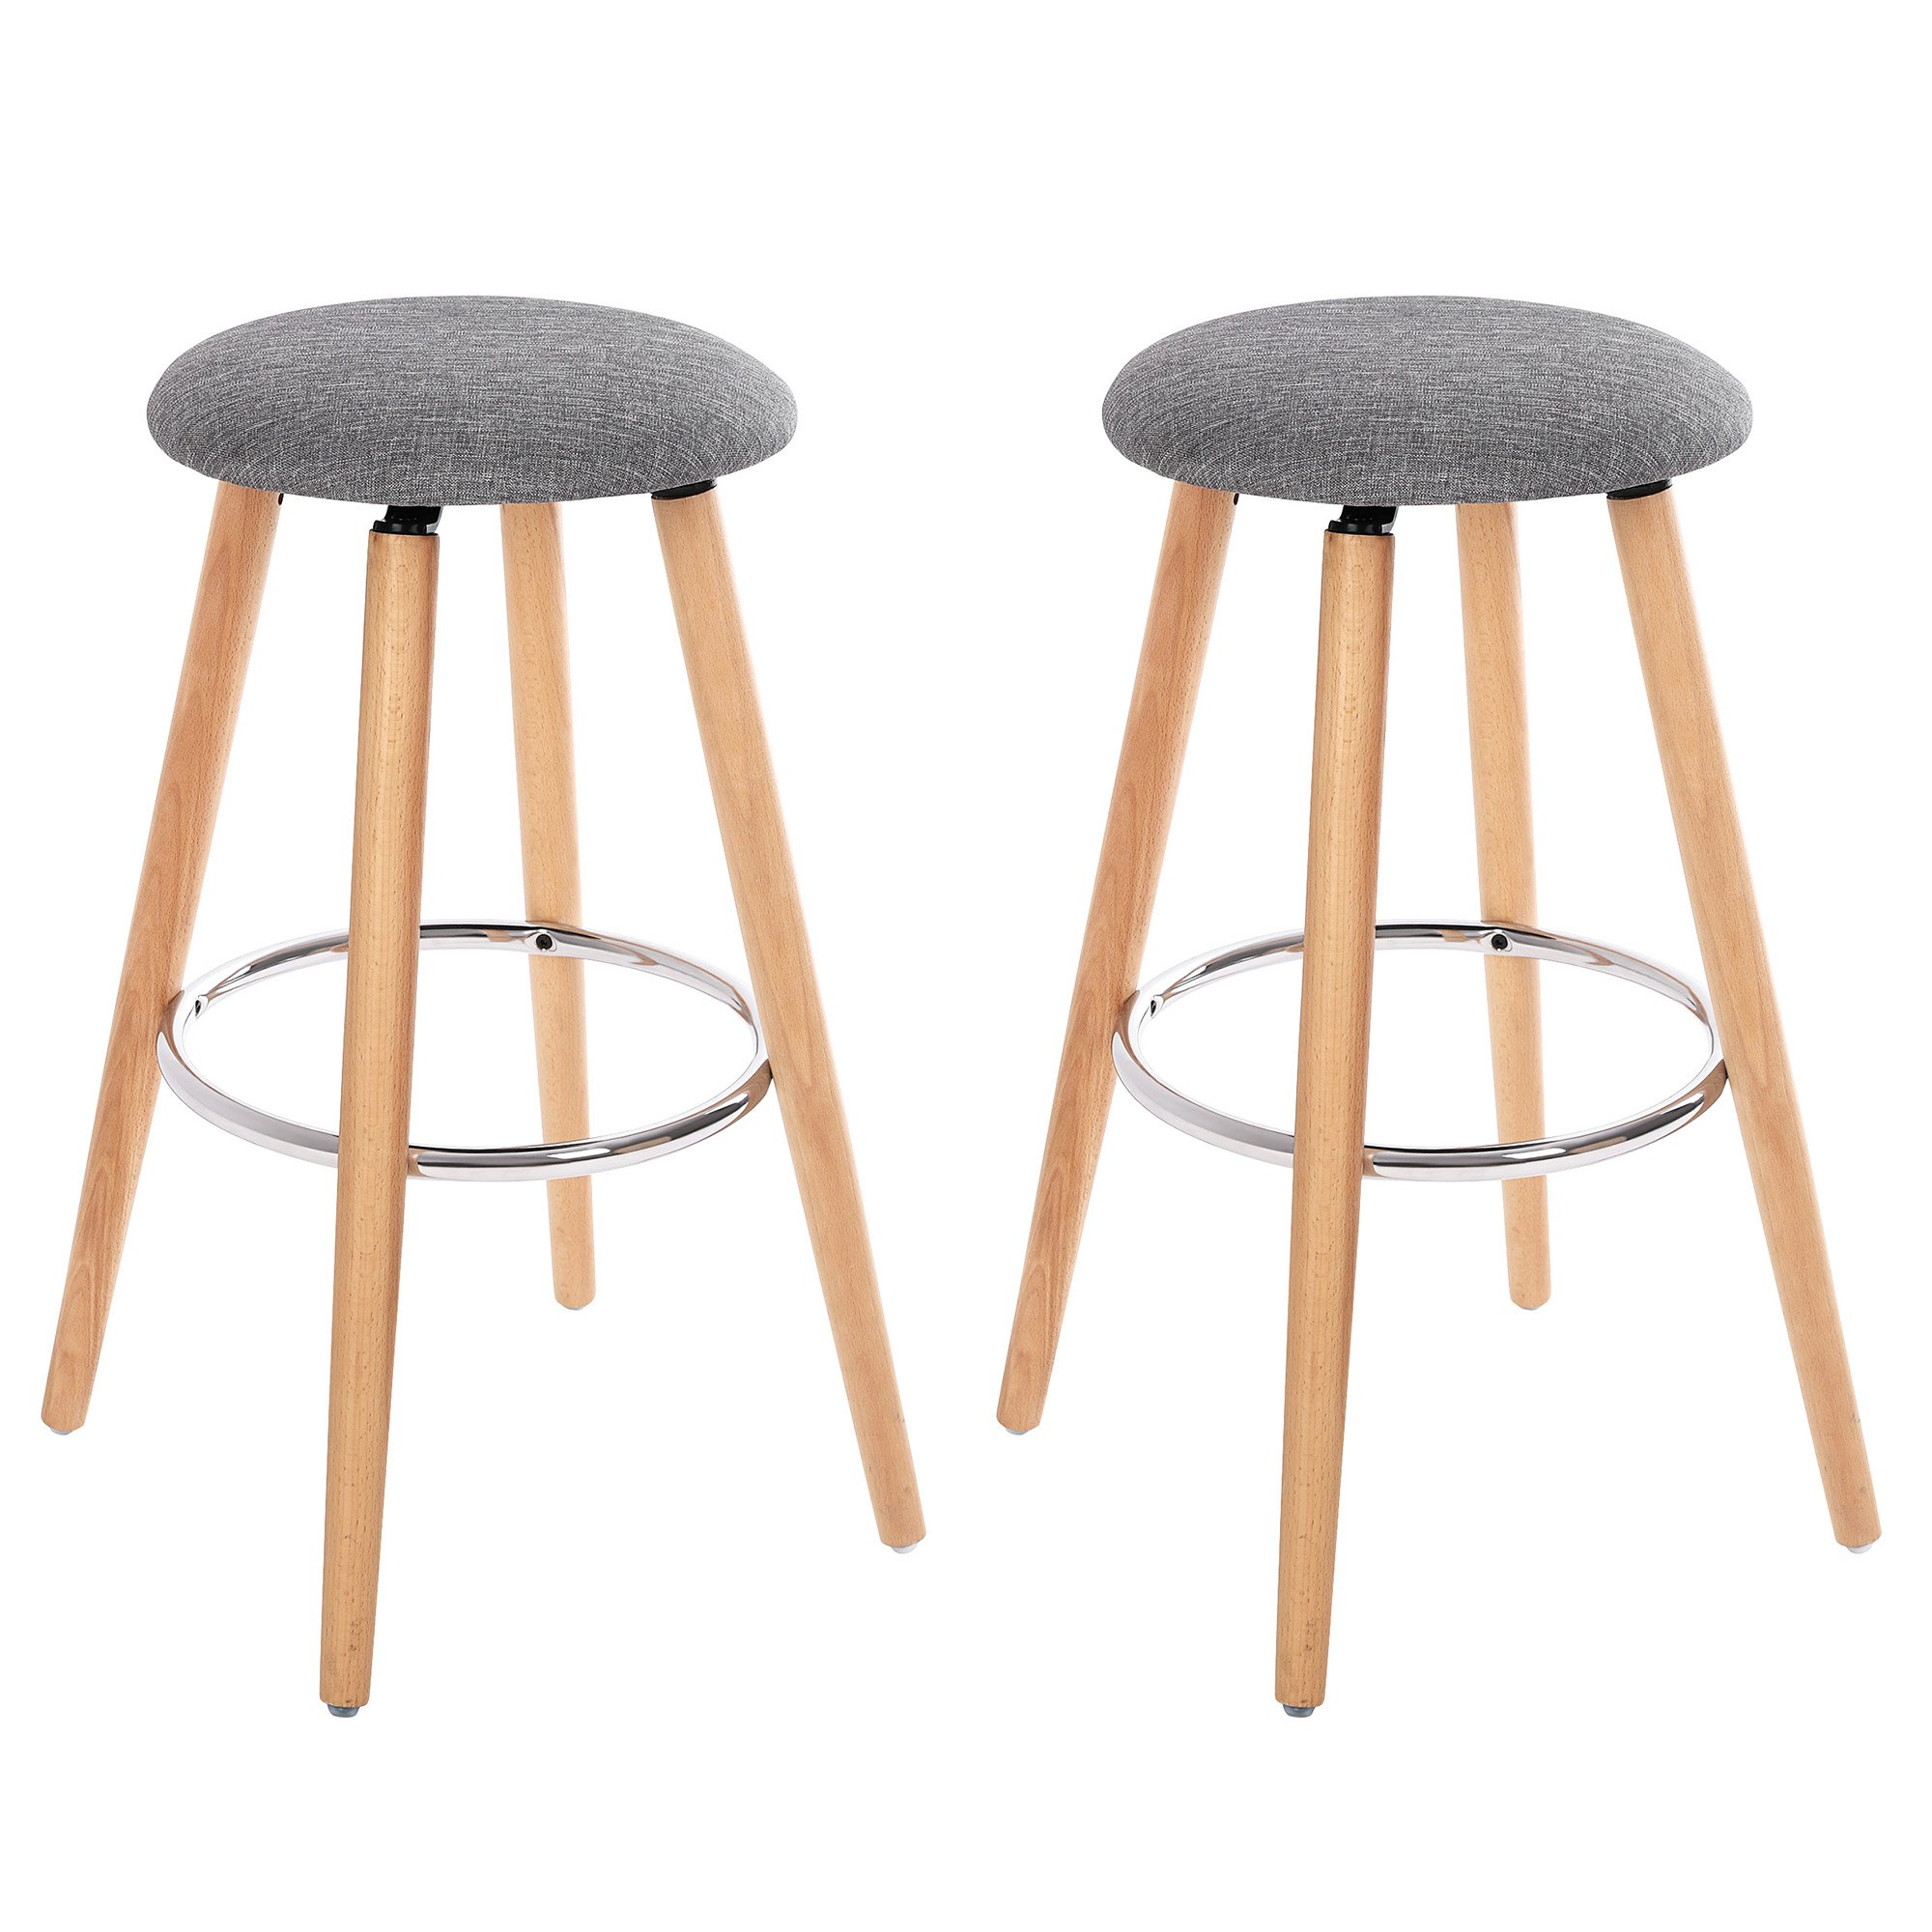 SONGMICS Set of 2, Bar Stools, Seat Height 27.9'', Kitchen Breakfast Round Wood Barstool, with Linen Fabric Seat, Gray ULJB22G